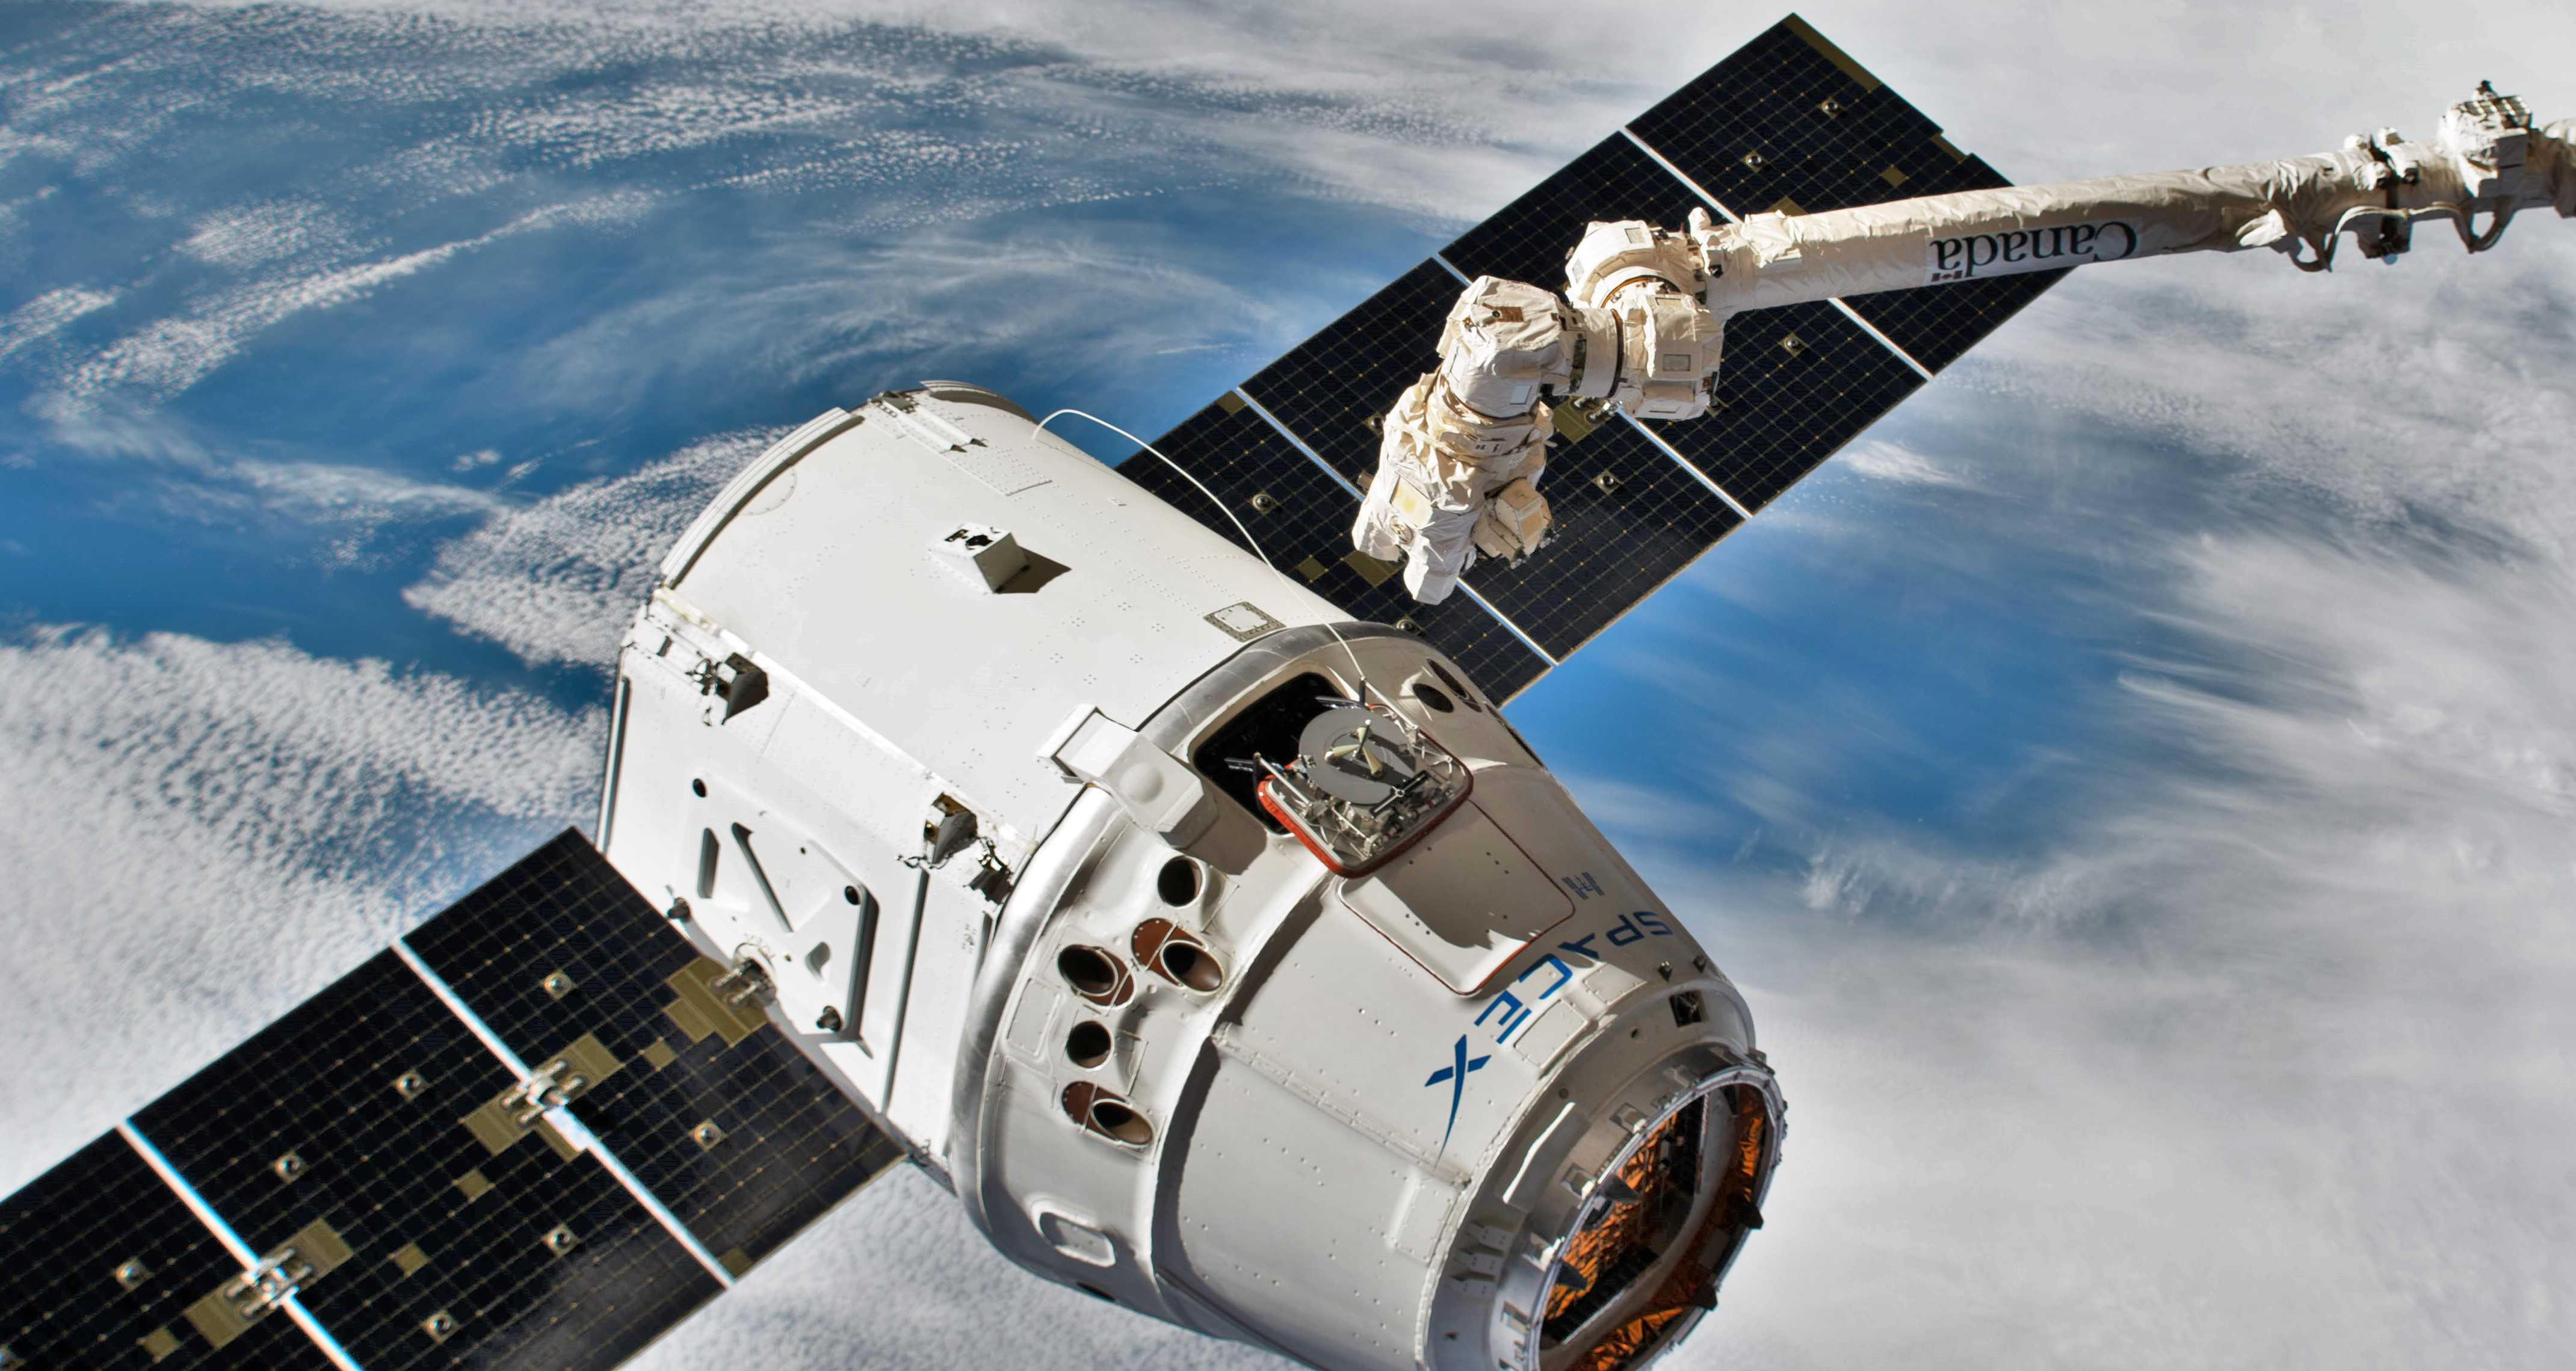 Cargo Dragon C113 CRS-17 ISS arrival 050619 (NASA) 6 crop (c)